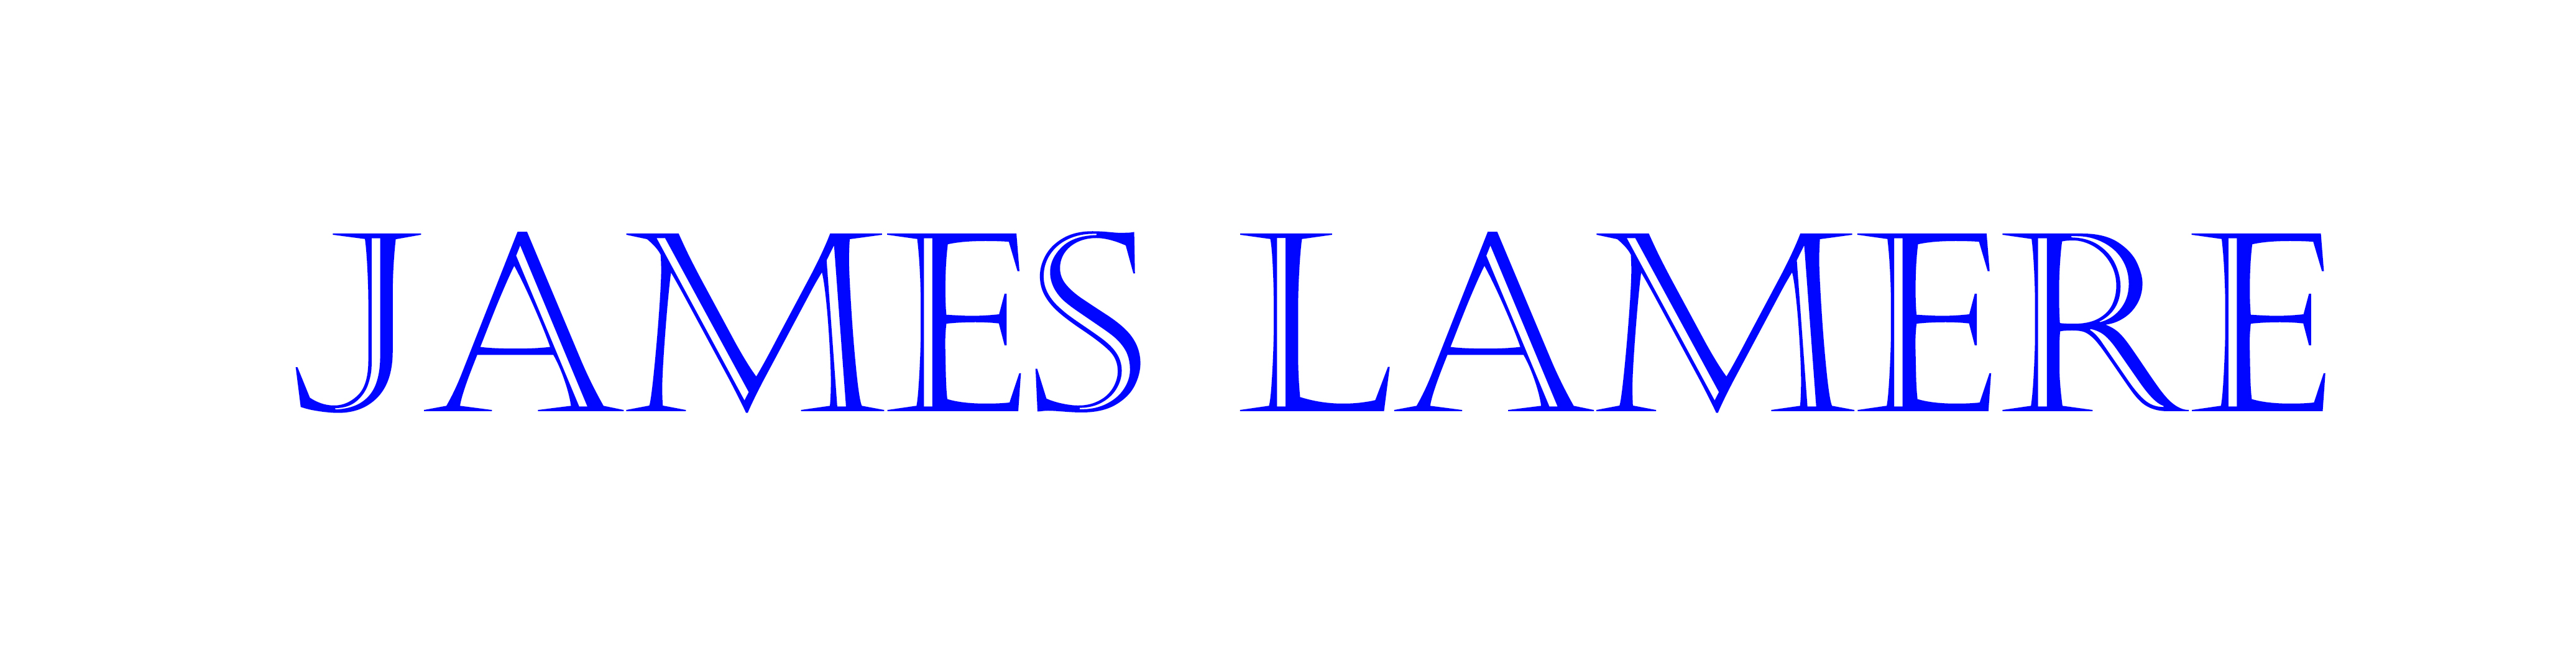 James LaMere Signature